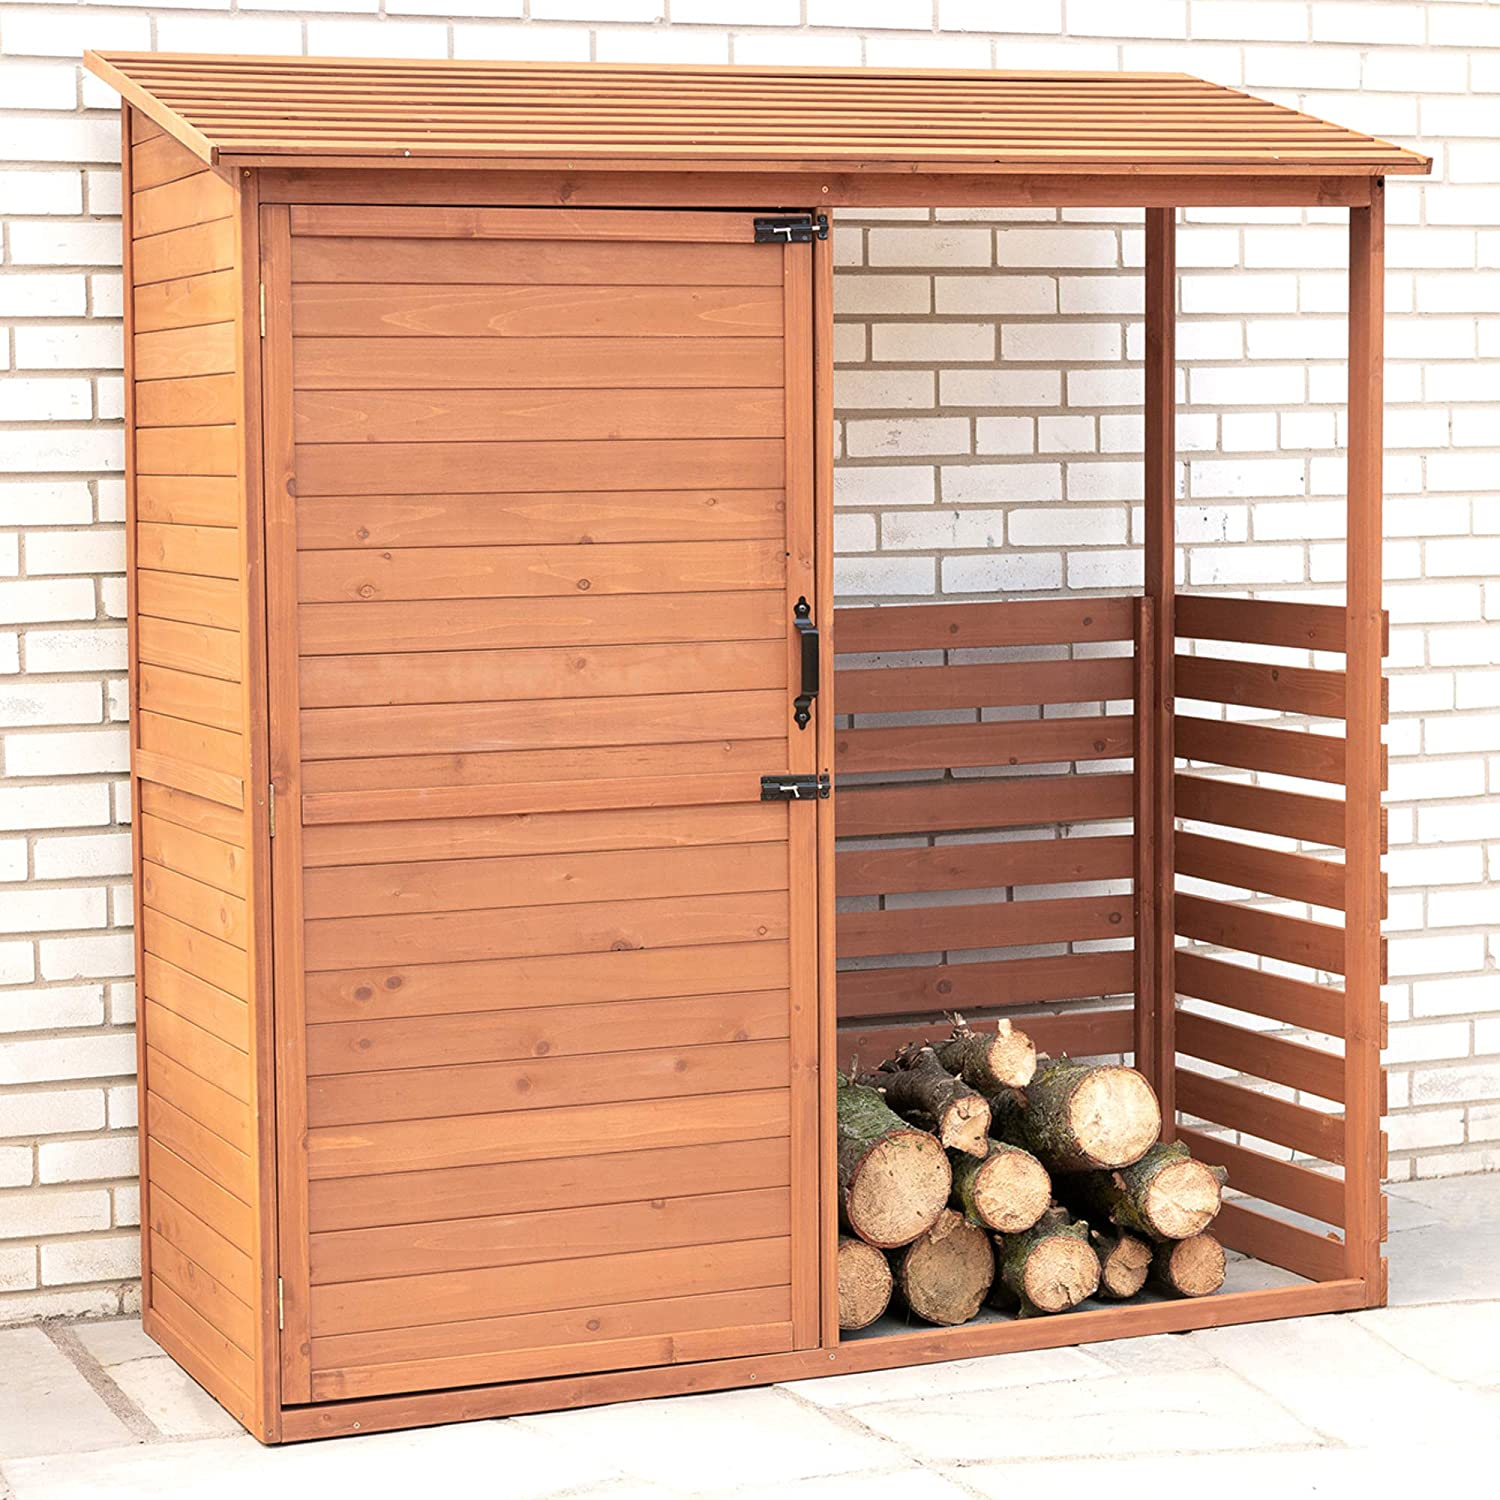 Design 1 Leisure Zone Outdoor Wooden Storage Sheds Fir Wood Lockers with Workstation